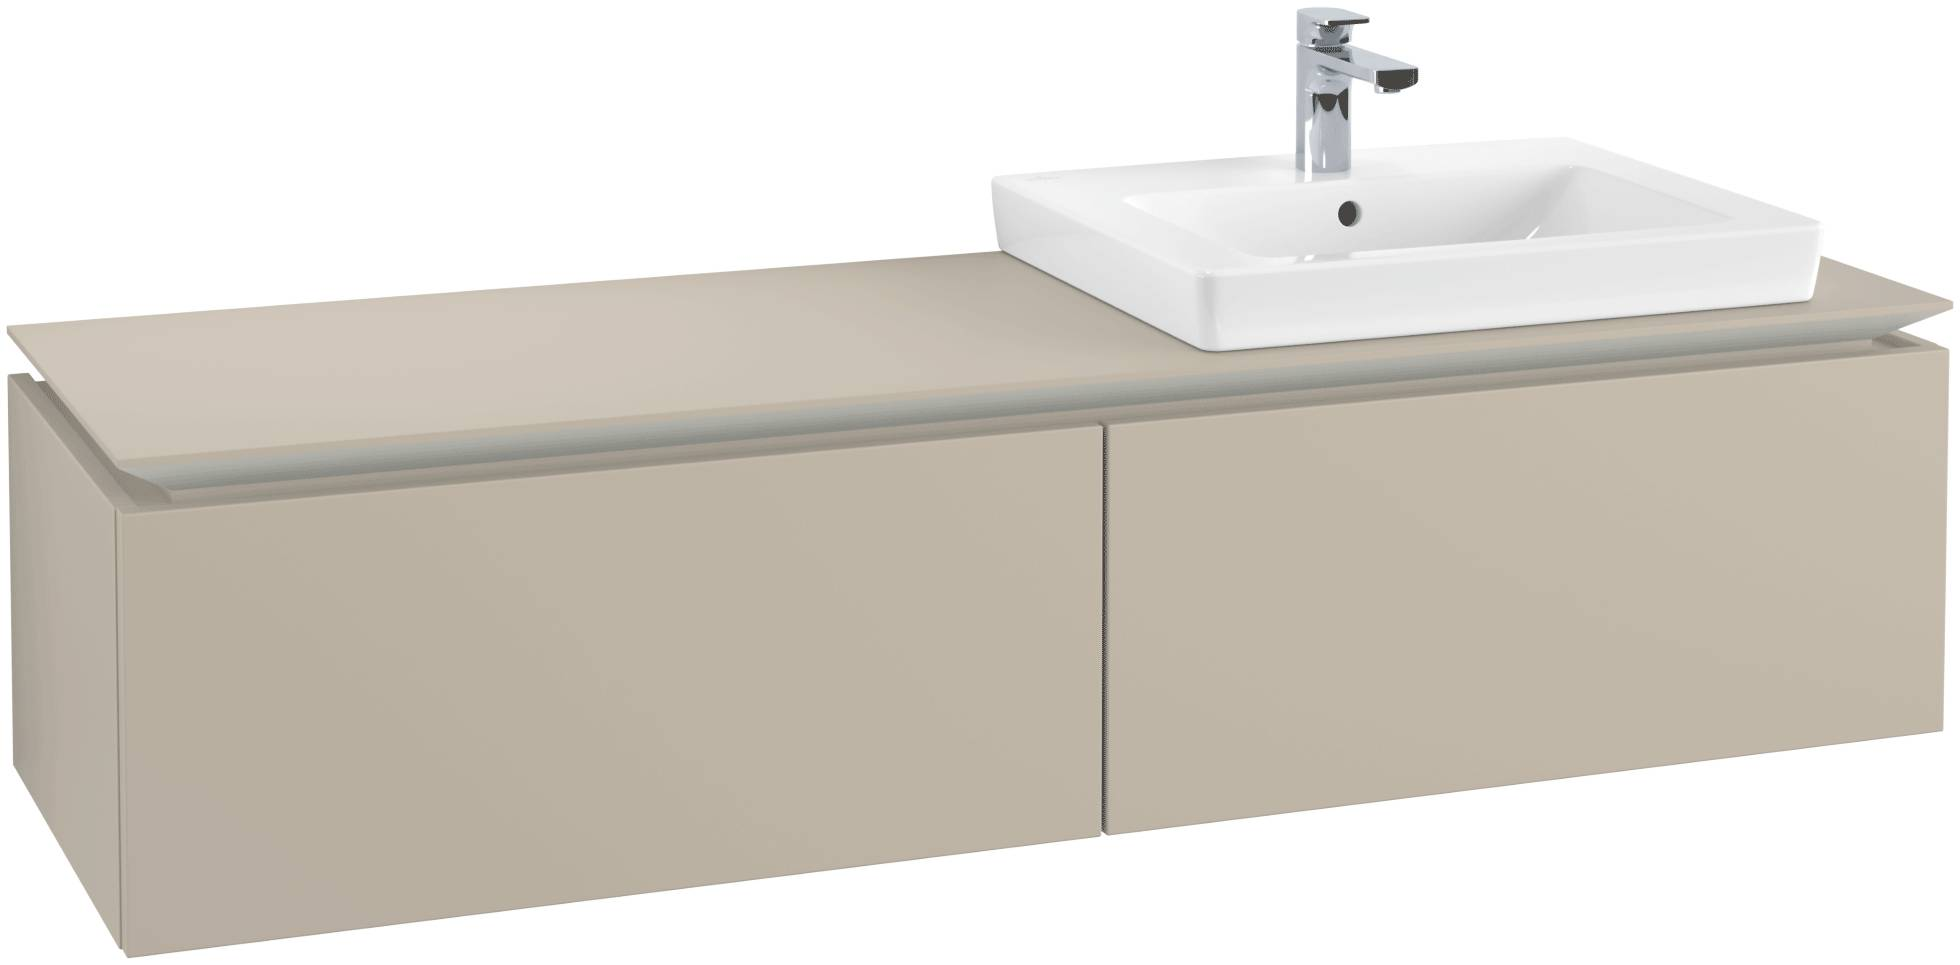 Villeroy & Boch Villeroy & Boch Legato - Meuble sous lavabo with 2 drawers & 1 cut-out right 1600 x 380 x 500mm soft grey